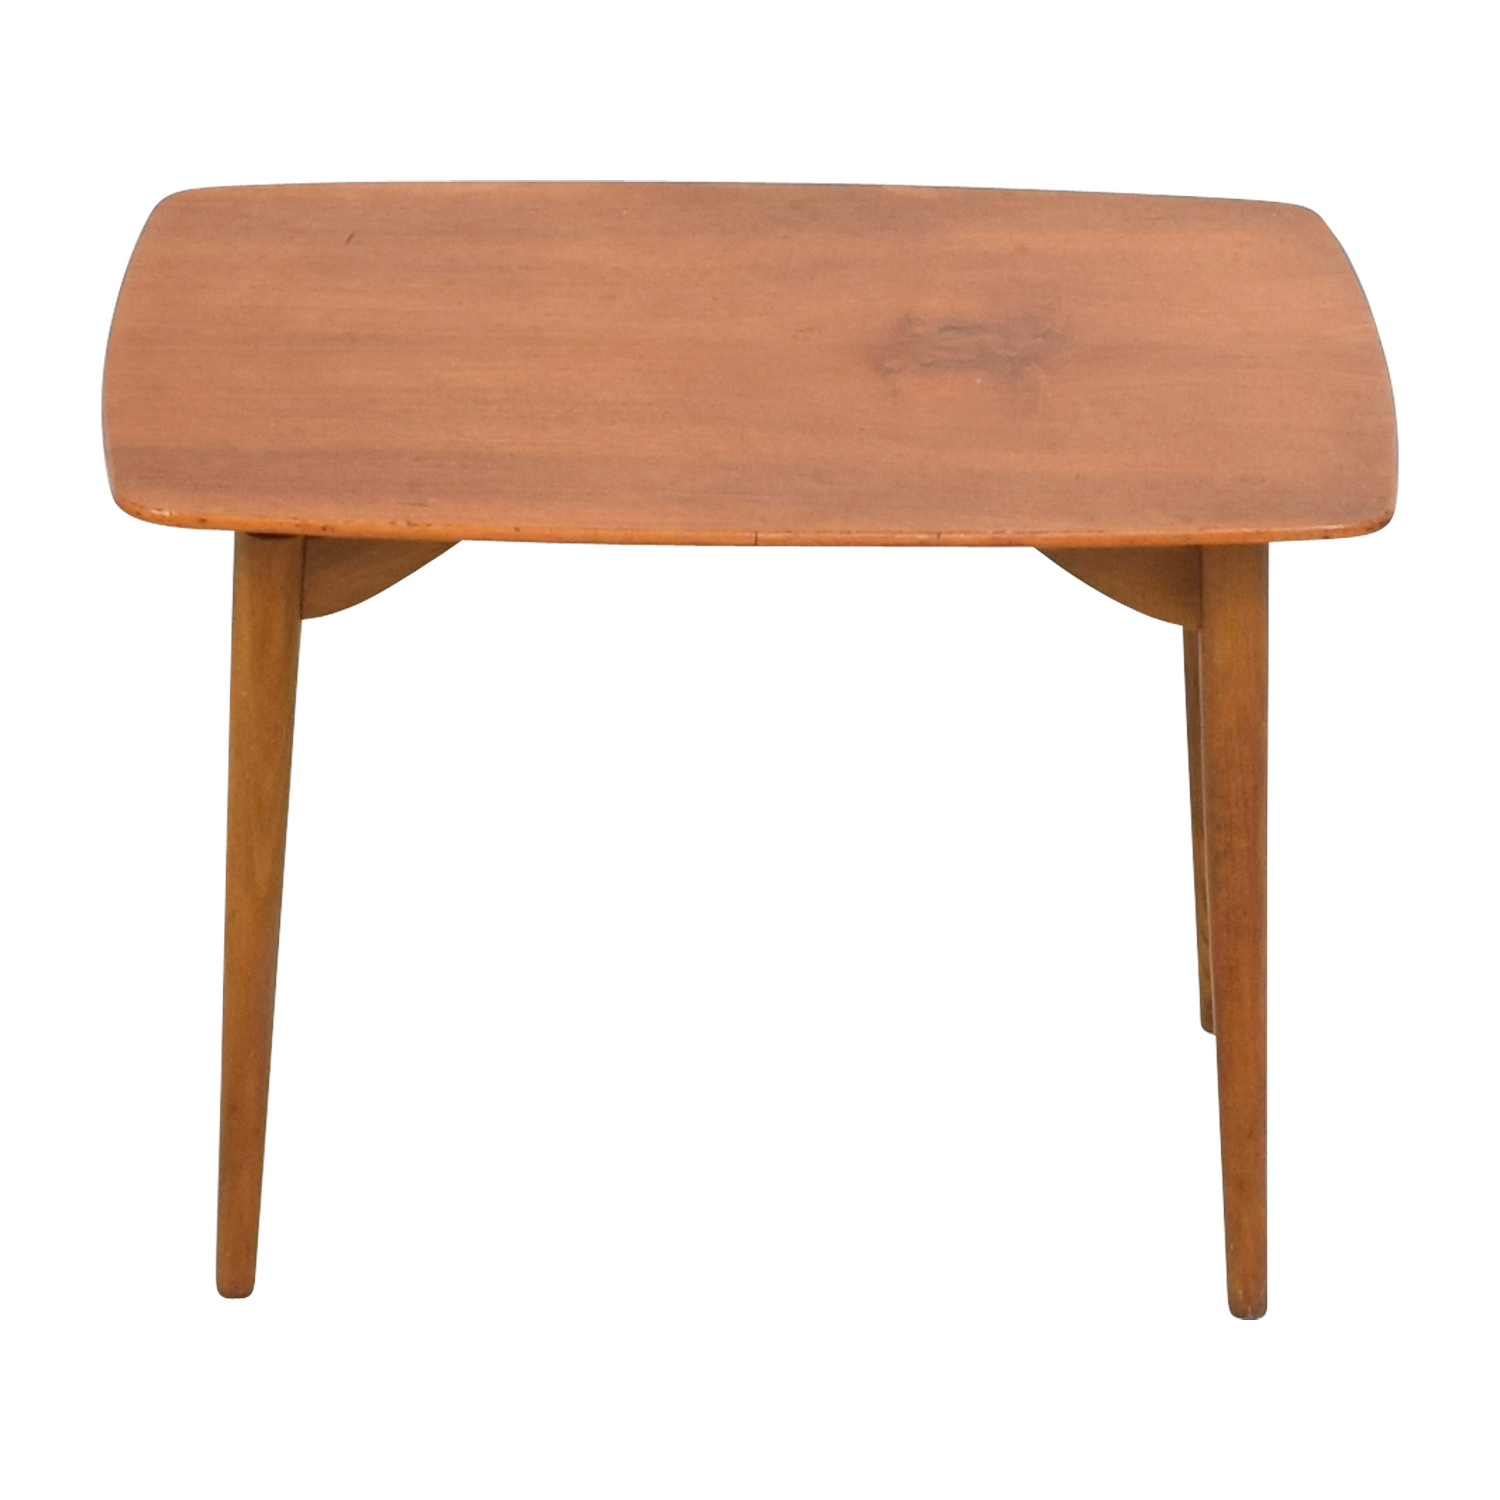 buy P Jeppesen P Jeppesen Mid Century Danish Teak Side Table online